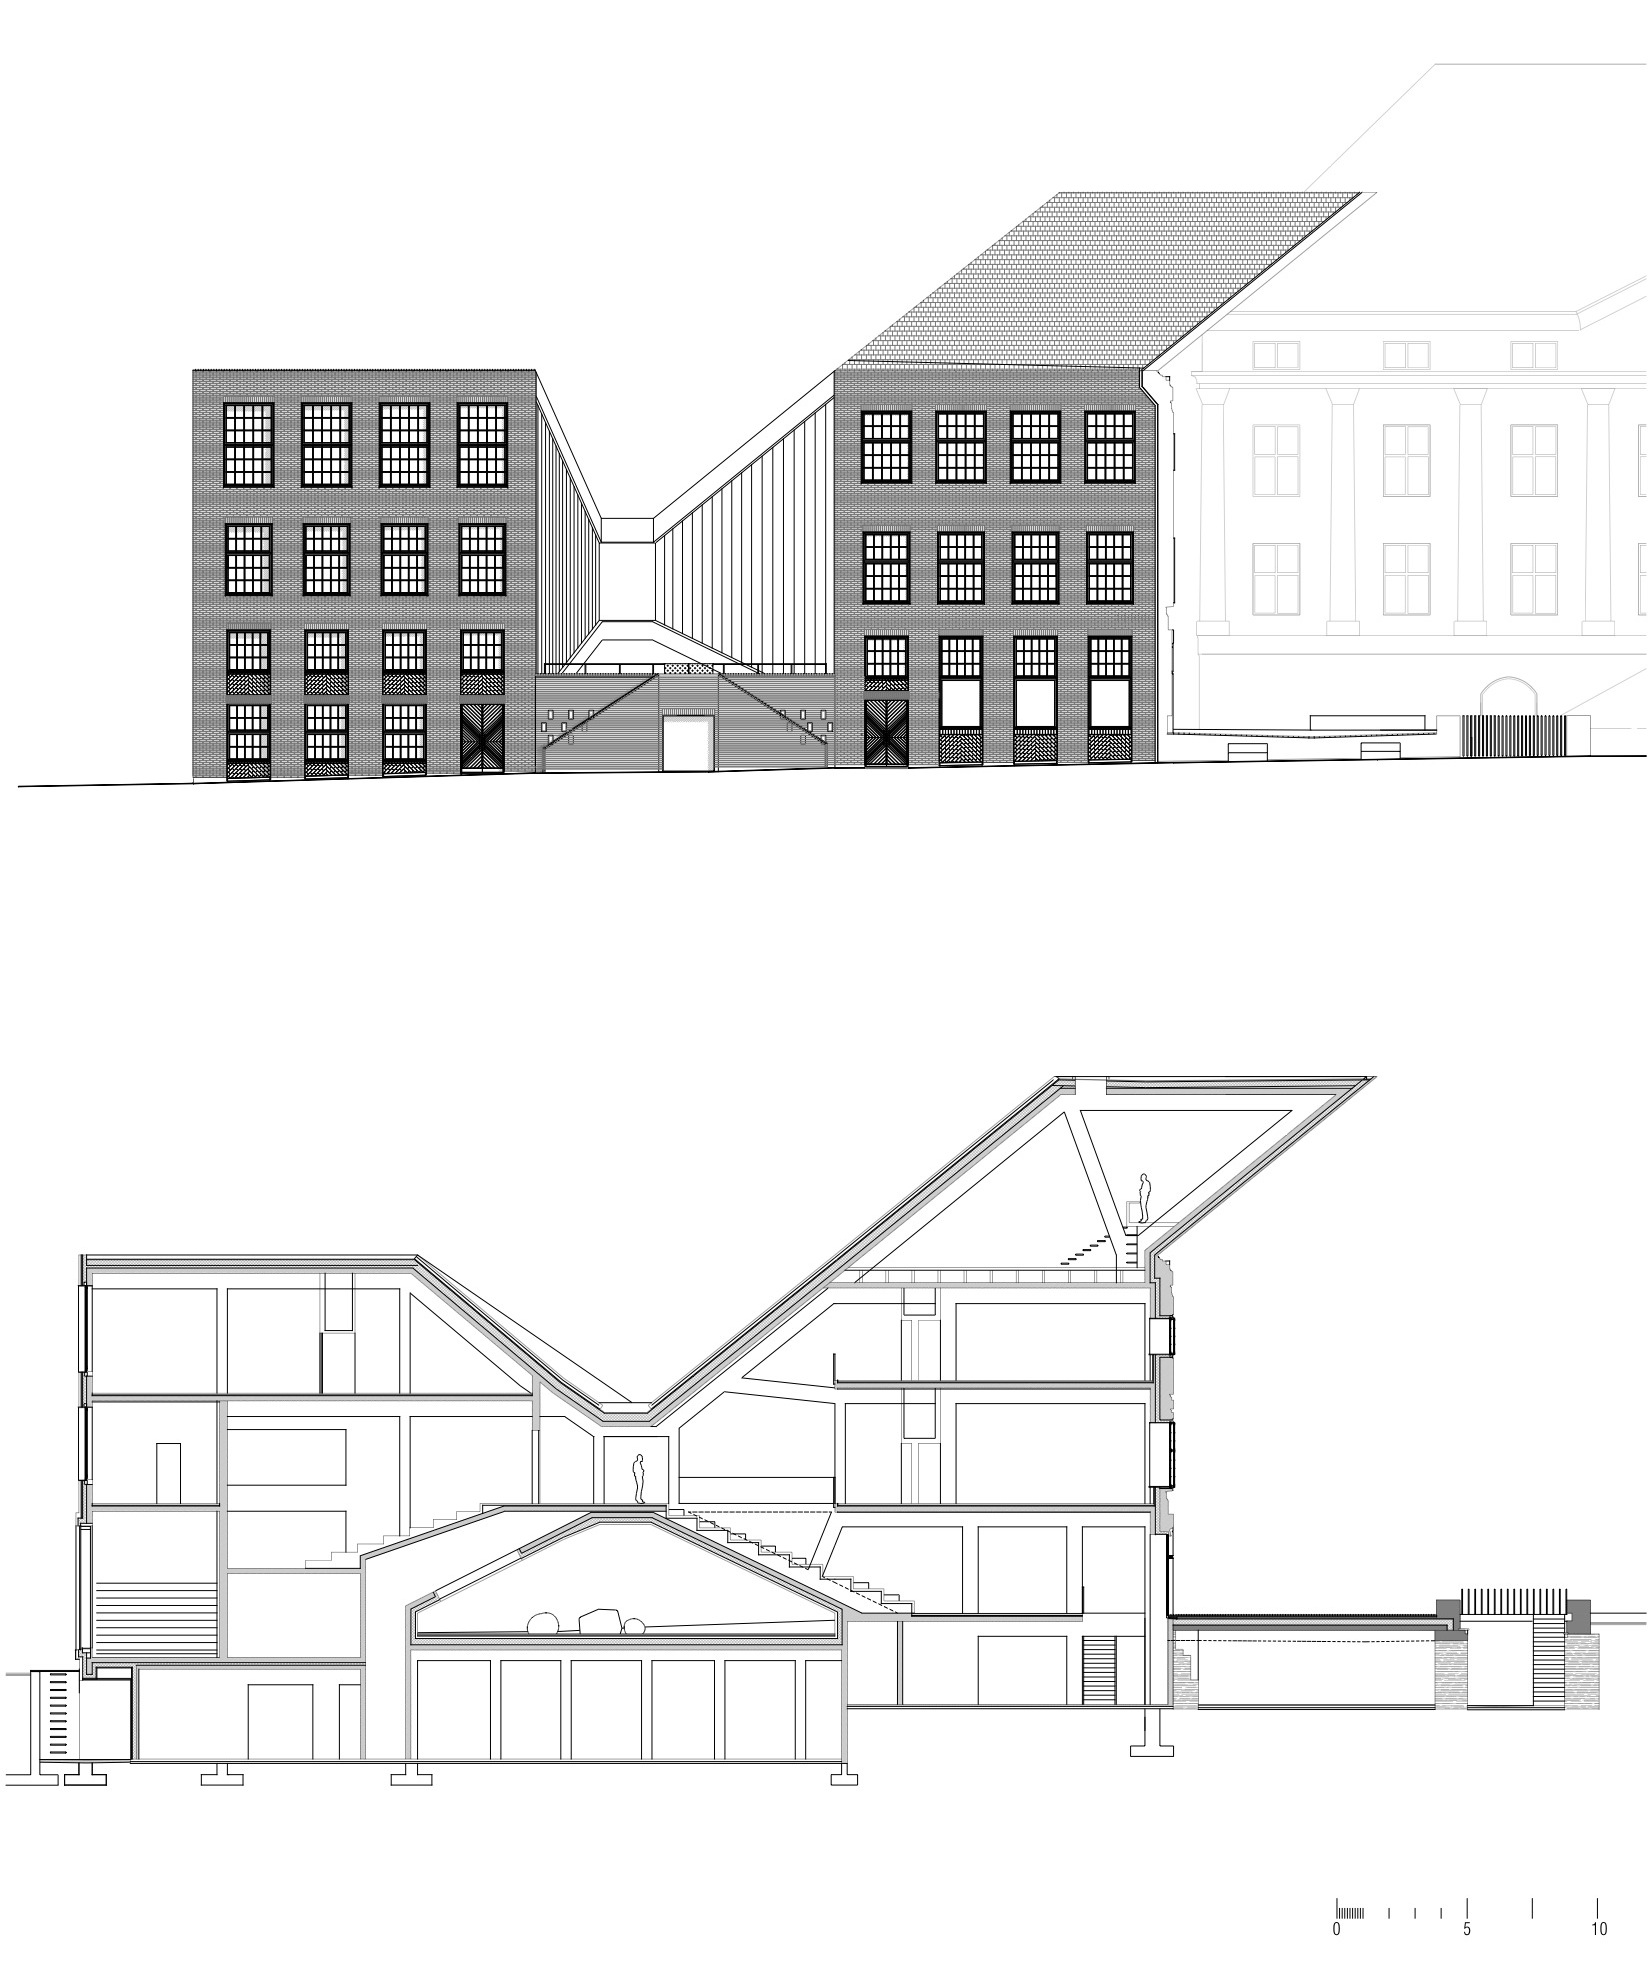 http://ad009cdnb.archdaily.net/wp-content/uploads/2013/08/52099bace8e44e8d40000038_narva-college-kavakava-architects_section___elevation_01.png